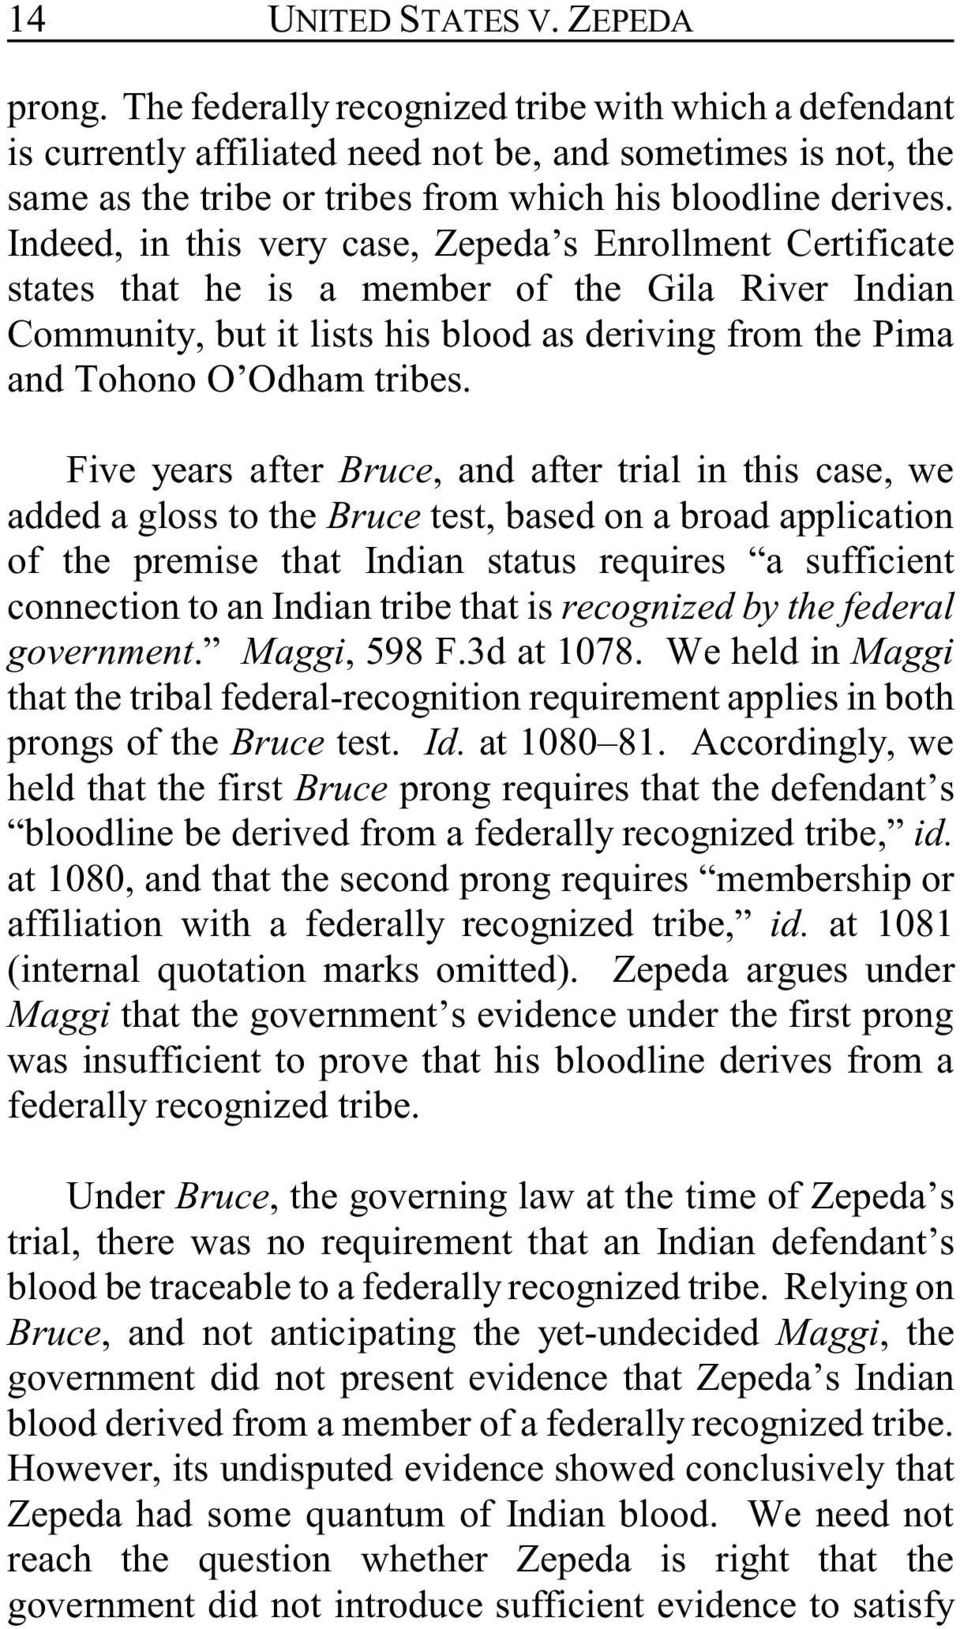 Indeed, in this very case, Zepeda s Enrollment Certificate states that he is a member of the Gila River Indian Community, but it lists his blood as deriving from the Pima and Tohono O Odham tribes.